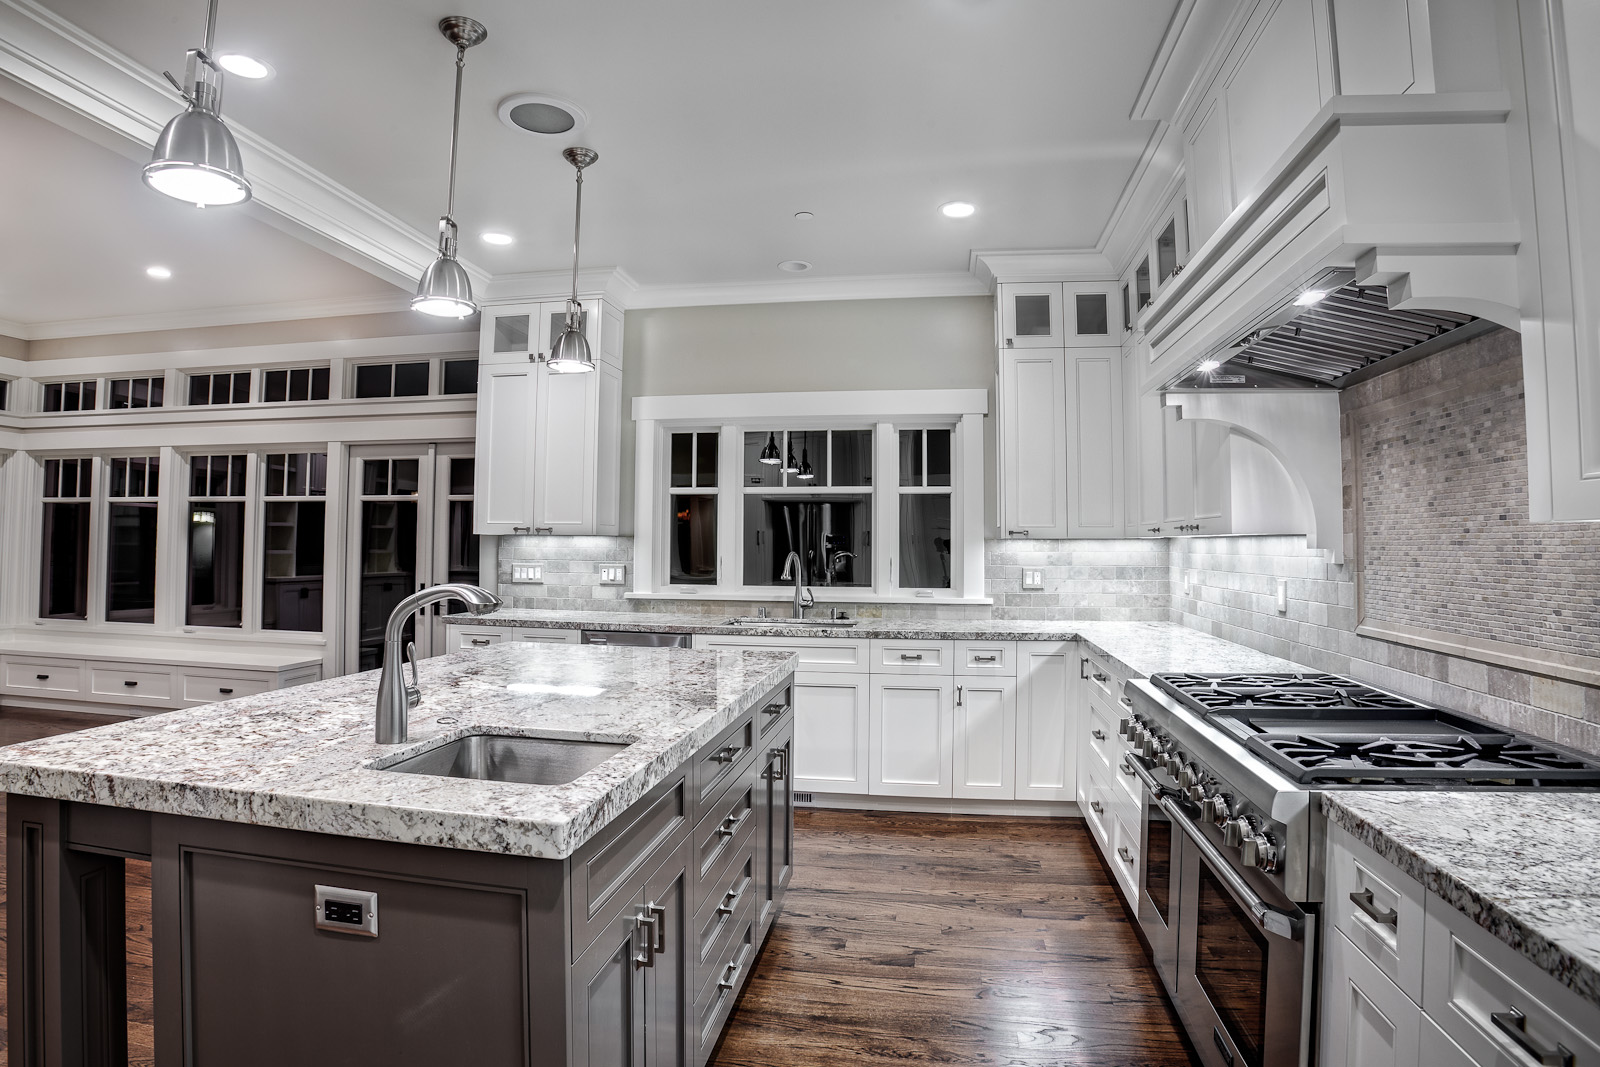 Kashmir white granite countertops Showcasing Striking ... on Backsplash Ideas For White Cabinets And Granite Countertops  id=24739